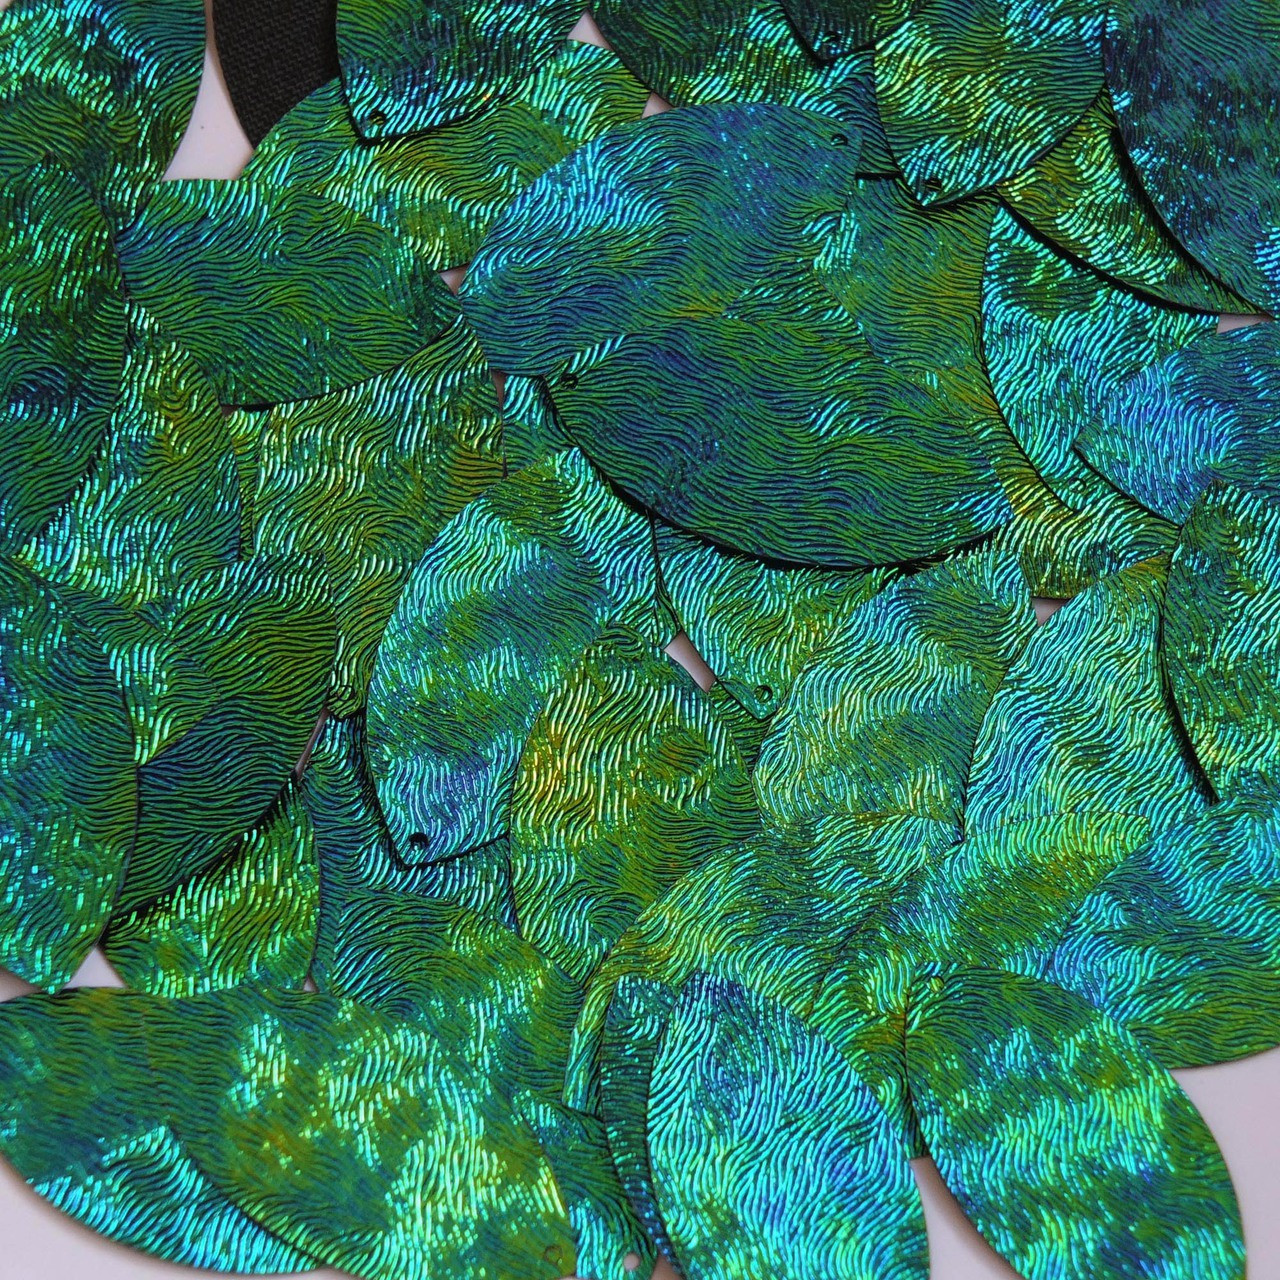 Teardrop Sequin Starry Night Blue Green Swirl Texture 1.5 inch Couture Paillette